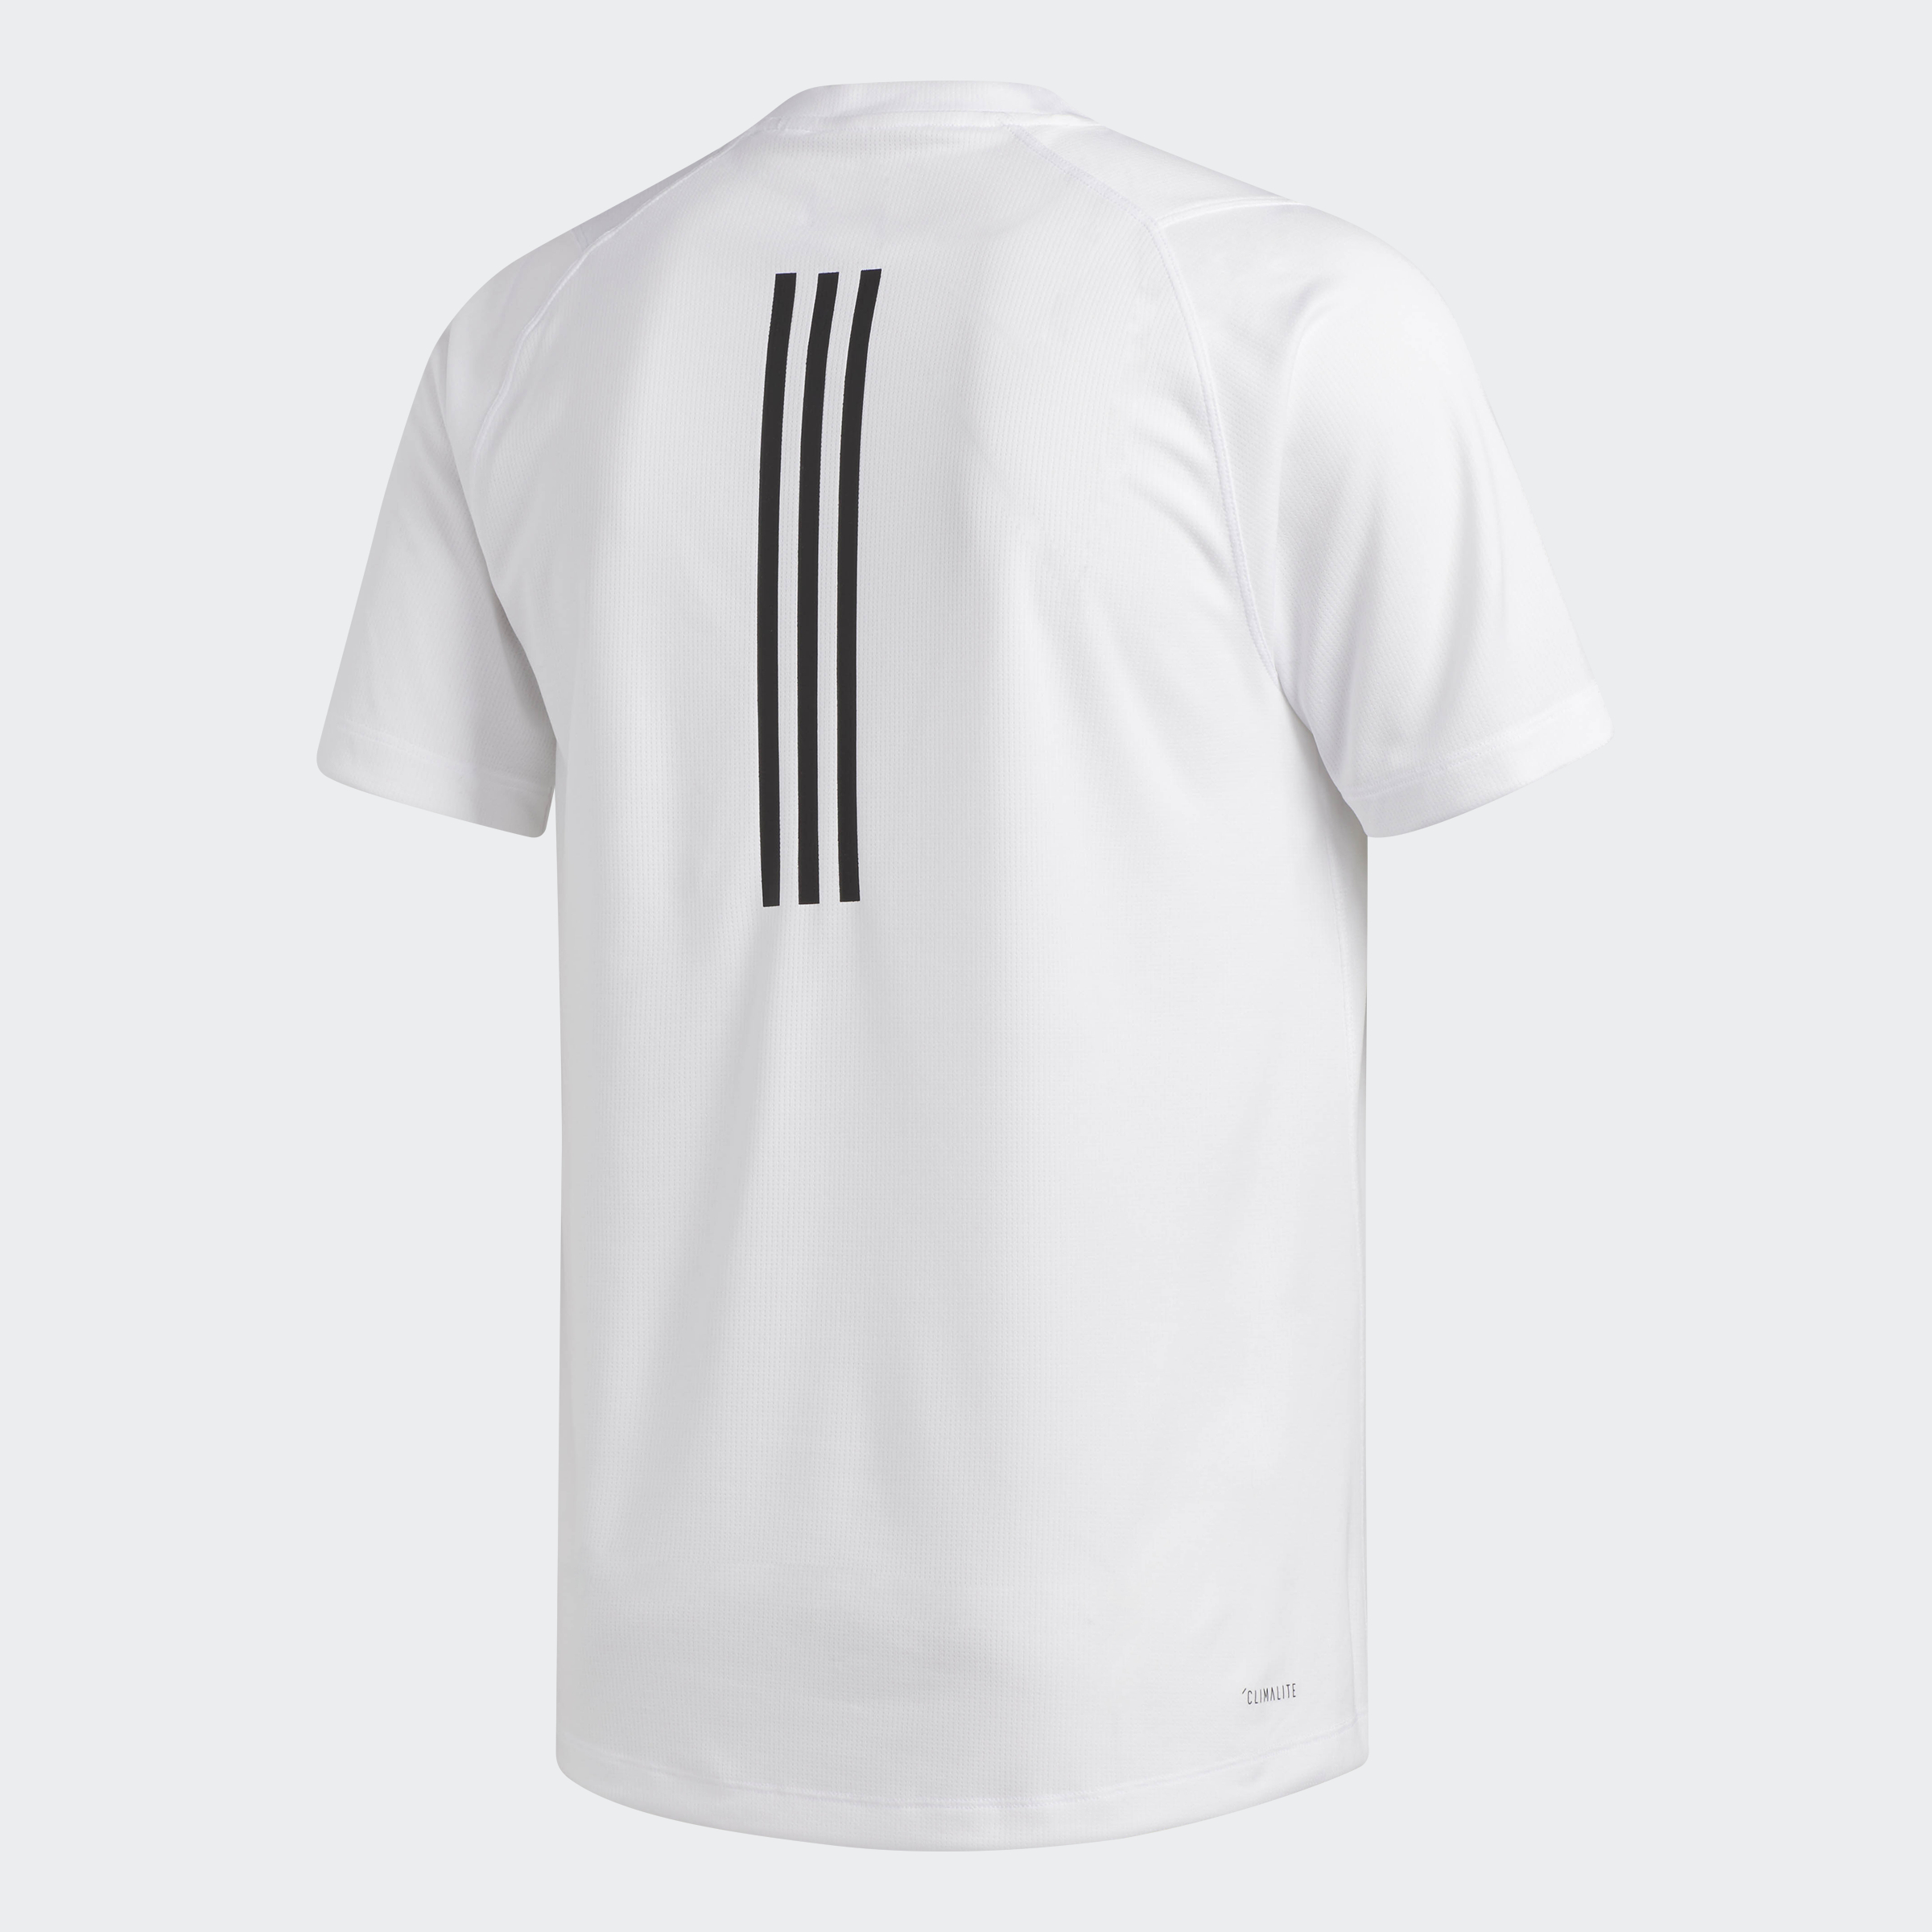 adidas-FreeLift-Sport-Fitted-3-Stripes-Tee-Men-039-s-Shirts miniature 33